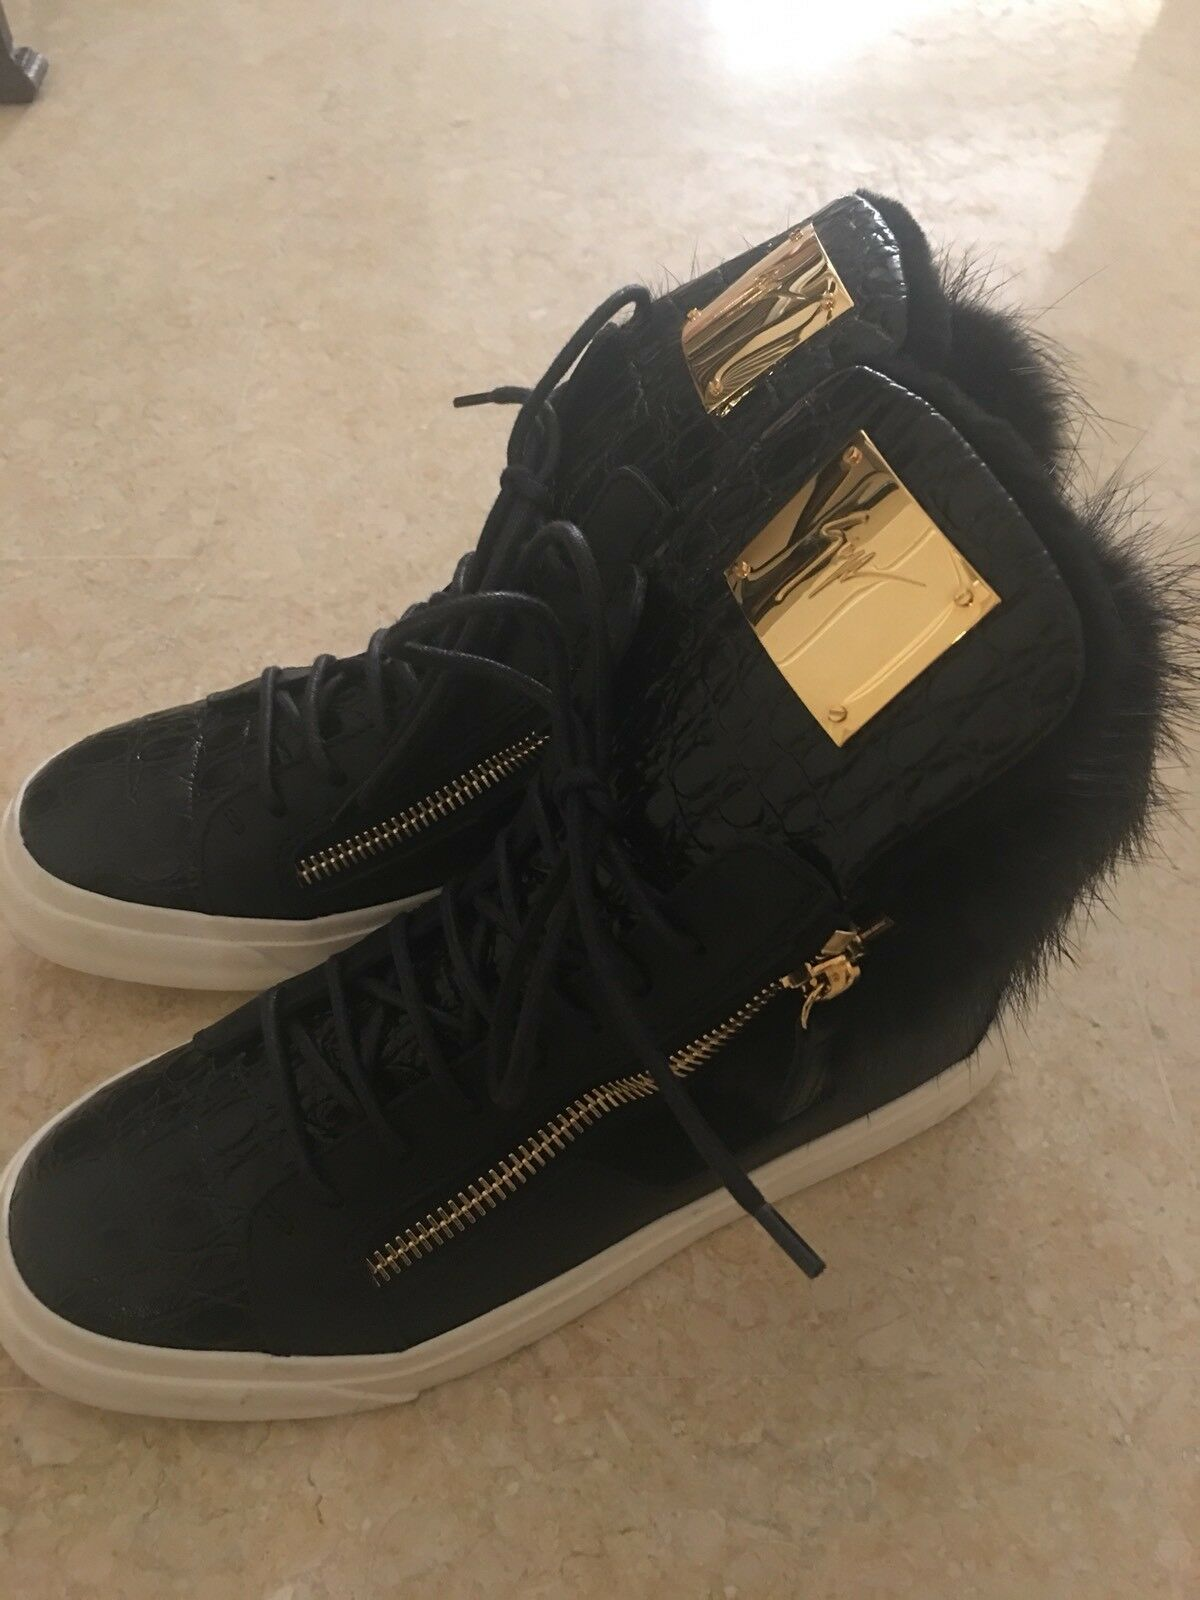 GIUSEPPE ZBNOTTI Leather Trainers Sneakers Shoes with Real Fur and Zips 38 UK 5